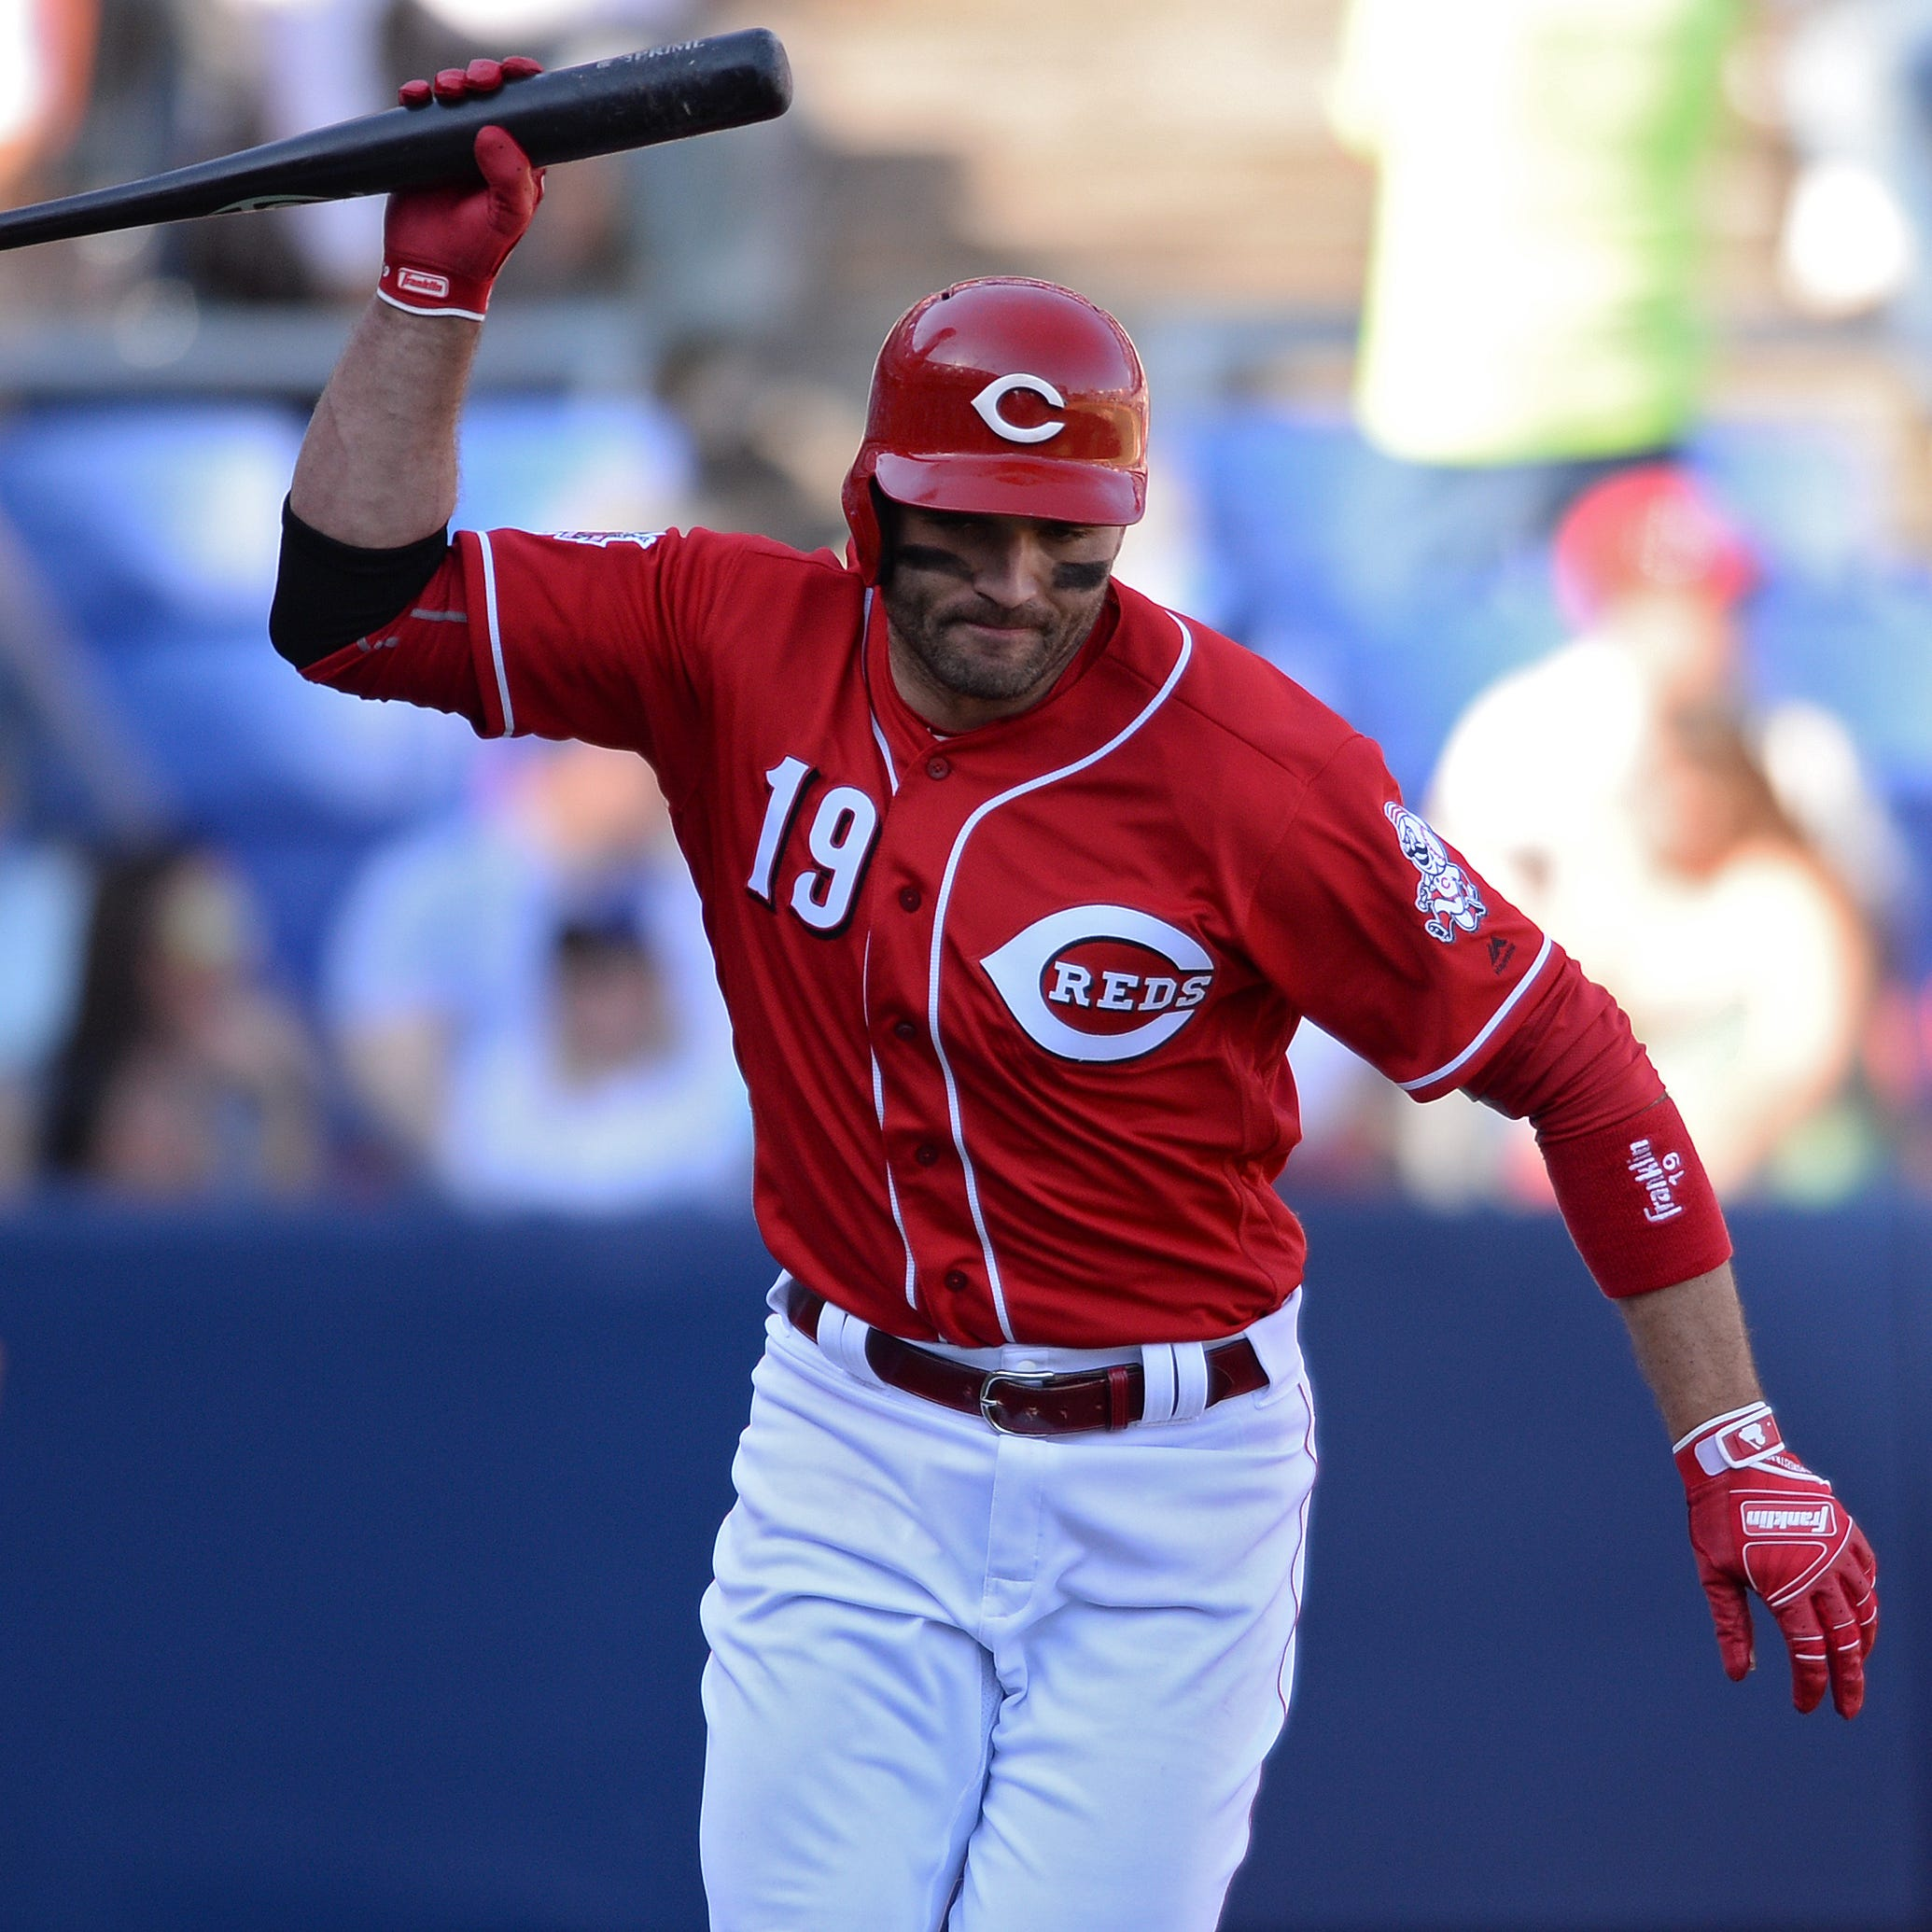 Cincinnati Reds' Joey Votto pops out to first base for first time in his career against Los Angeles Dodgers